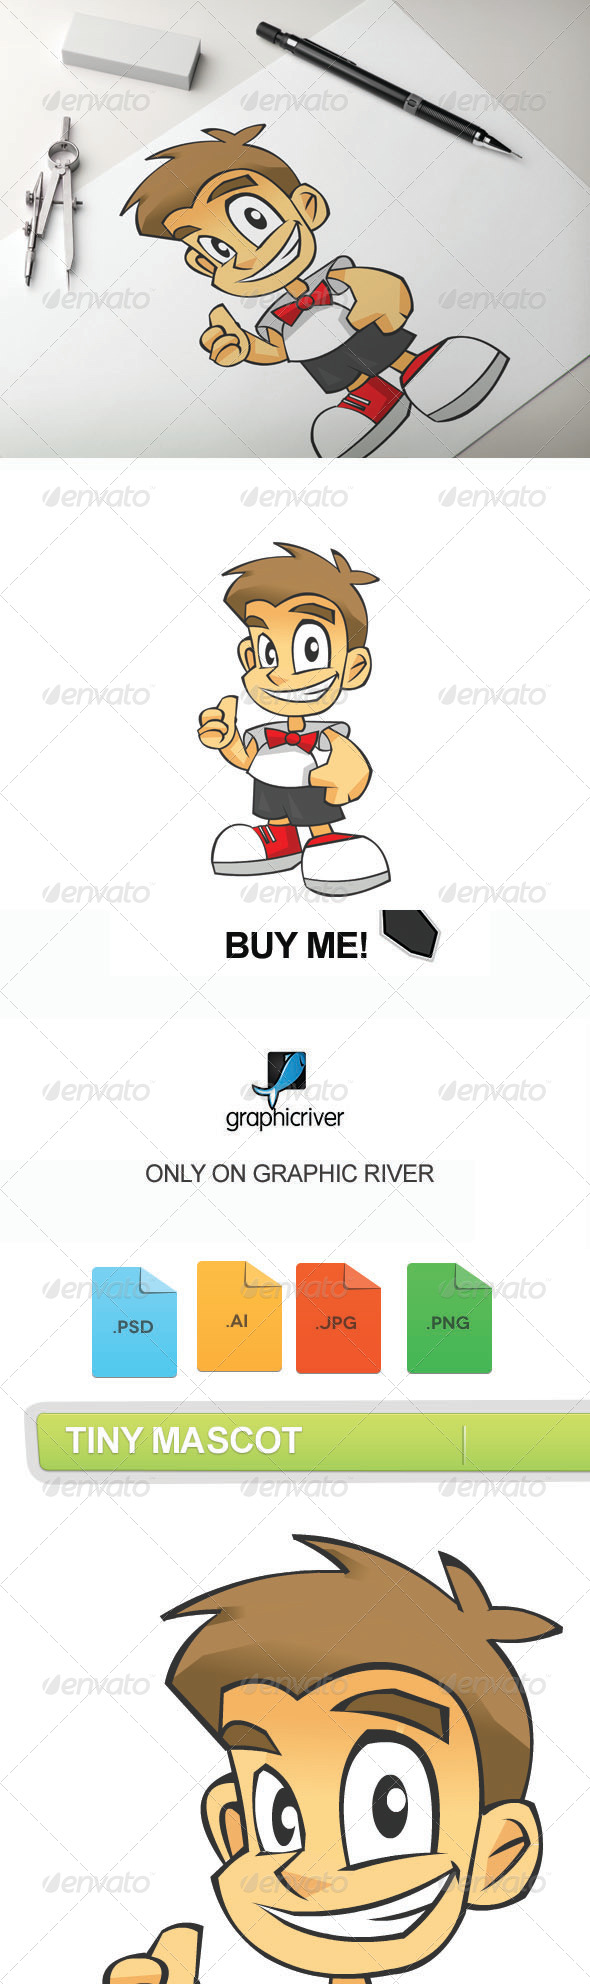 GraphicRiver Tiny Mascot 7610254